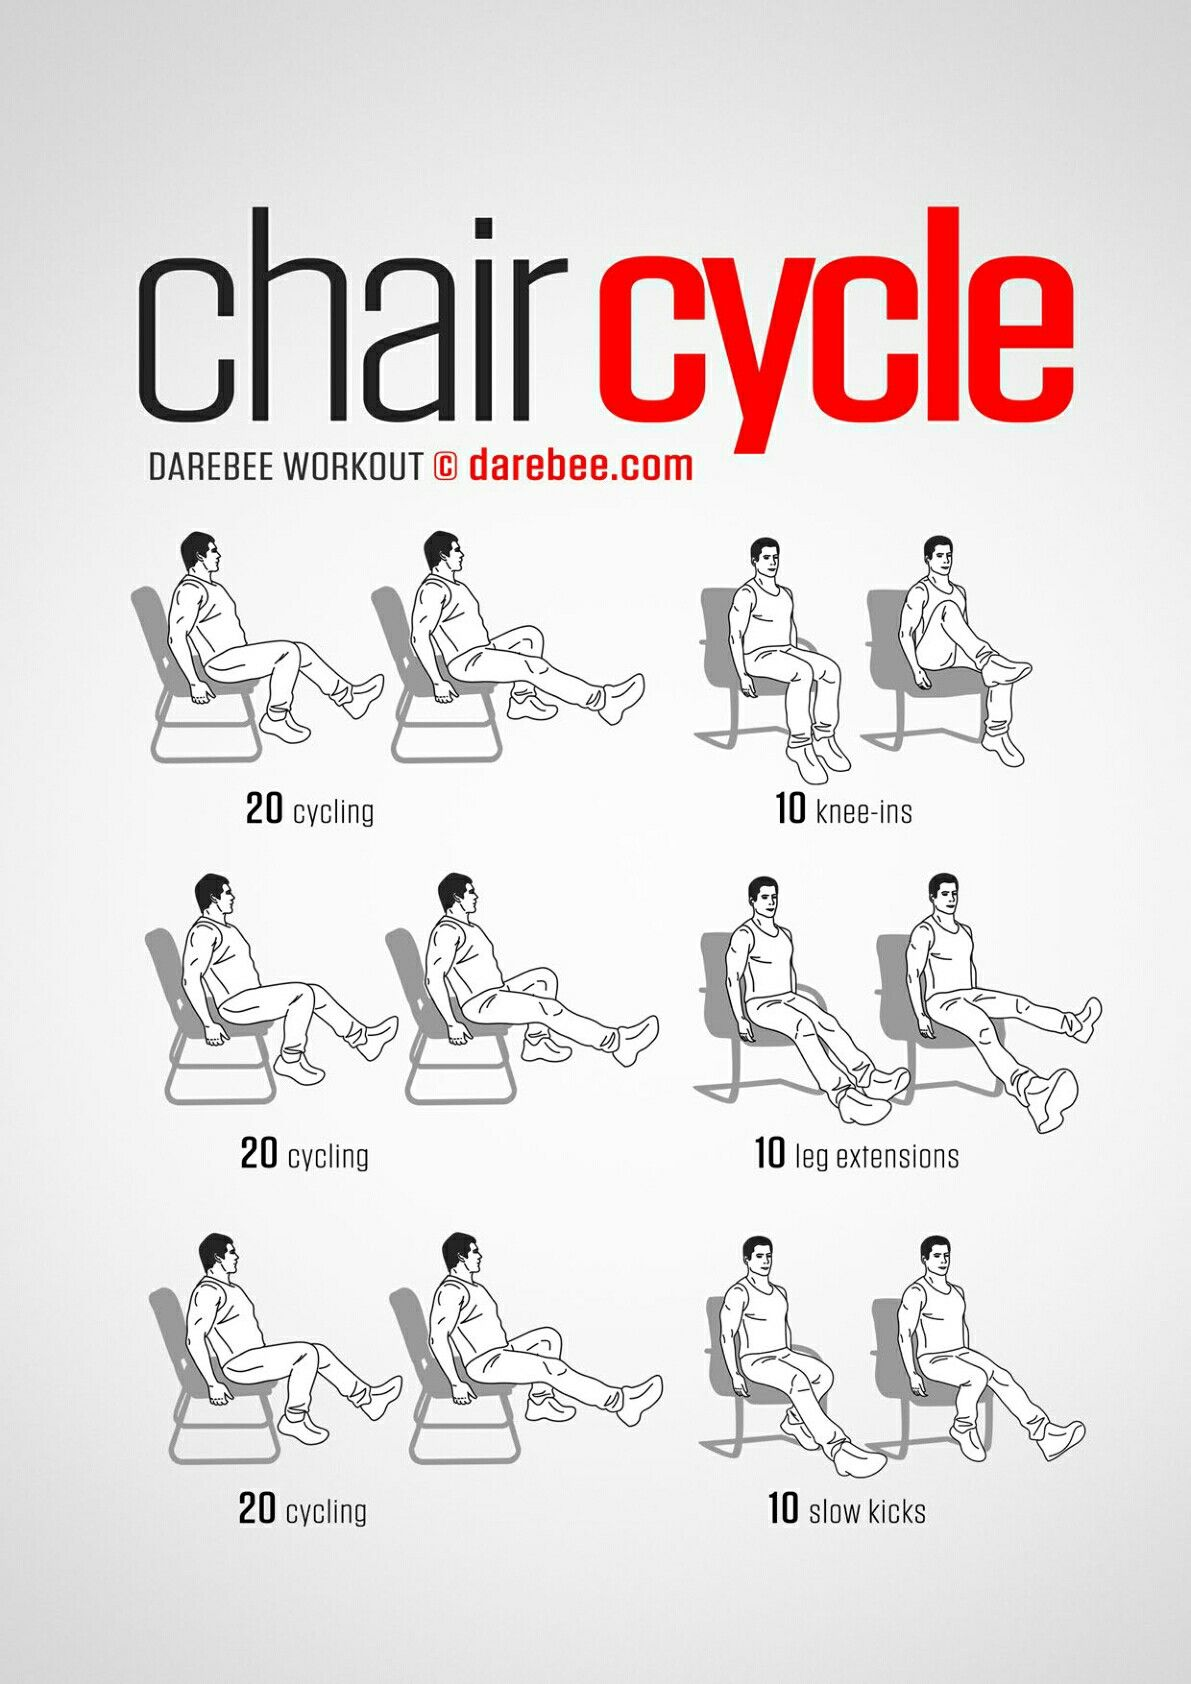 Chair Cycle Office Workout | Workouts | Pinterest | Exercise ... on workout tv, workout office furniture, workout glider, resistance chair, the gymgym chair, elastic bungee chair, workout treadmill, workout mirror, exercise chair, workout sled, pettibon wobble chair, workout chest, workout planner, workout heart, workout worksheet, fitness chair, workout bench, re bungee chair, workout stool, workout tables,